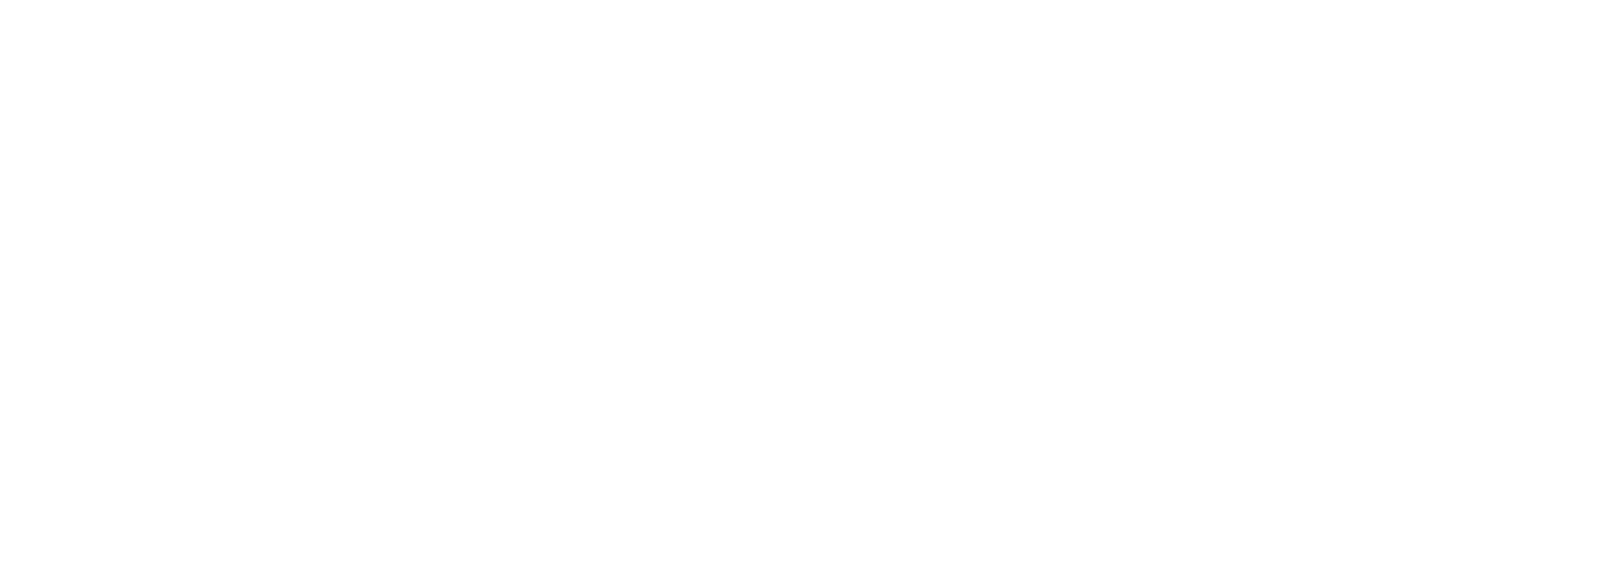 Rebel Architect, Manila Female Photographer and Coffee Addict